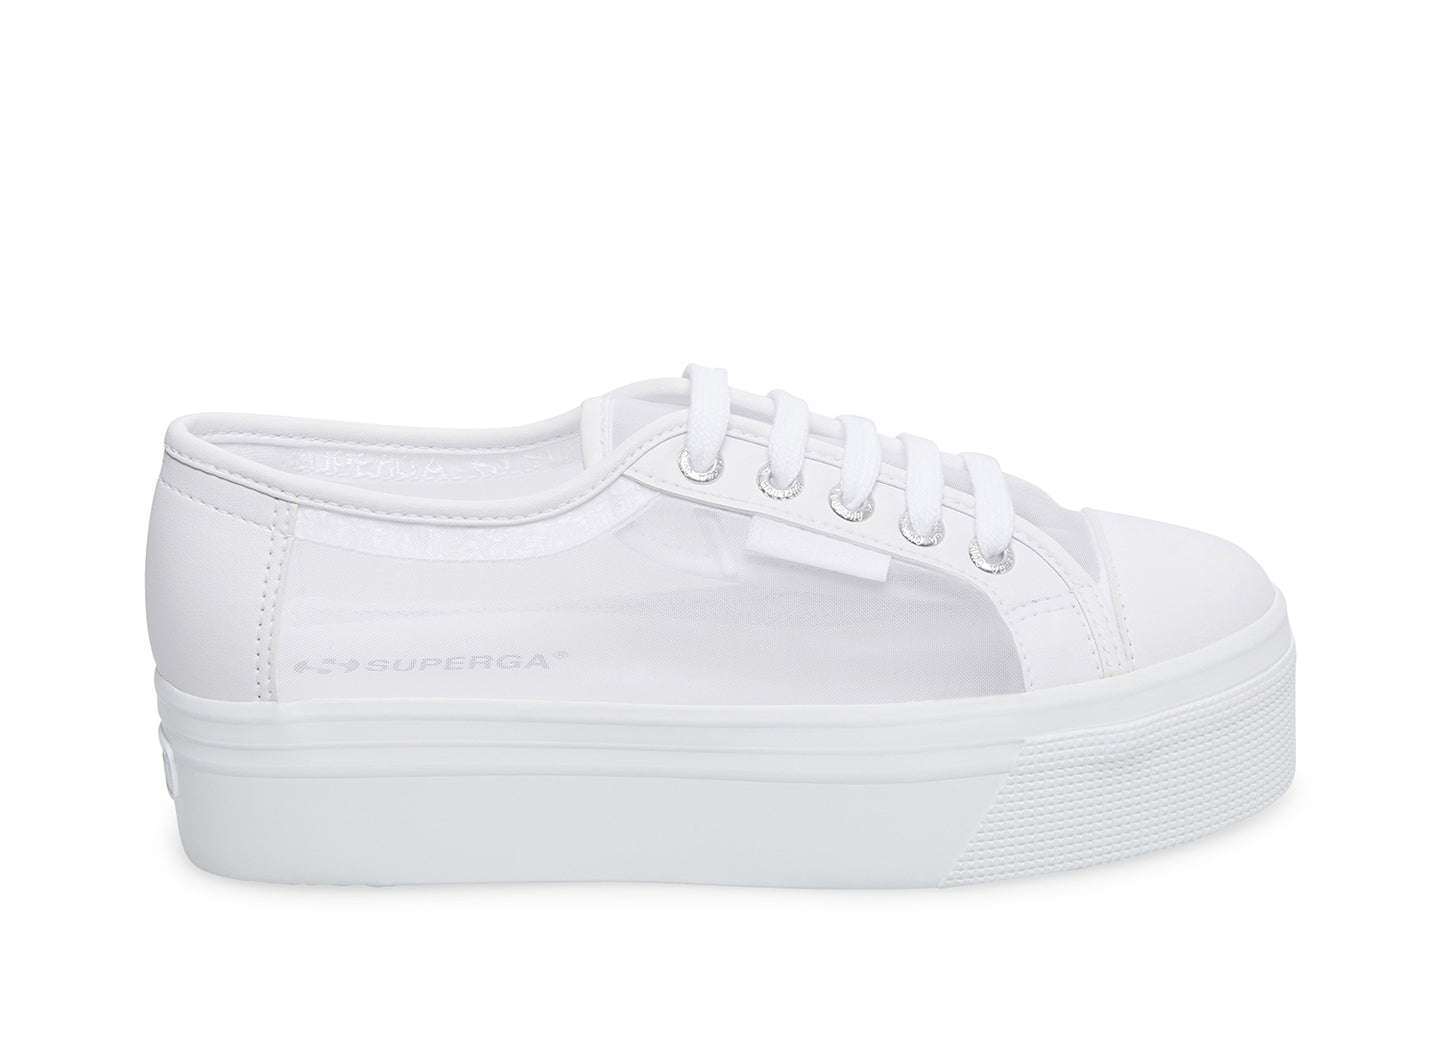 2790 MATTNETW WHITE - Women's